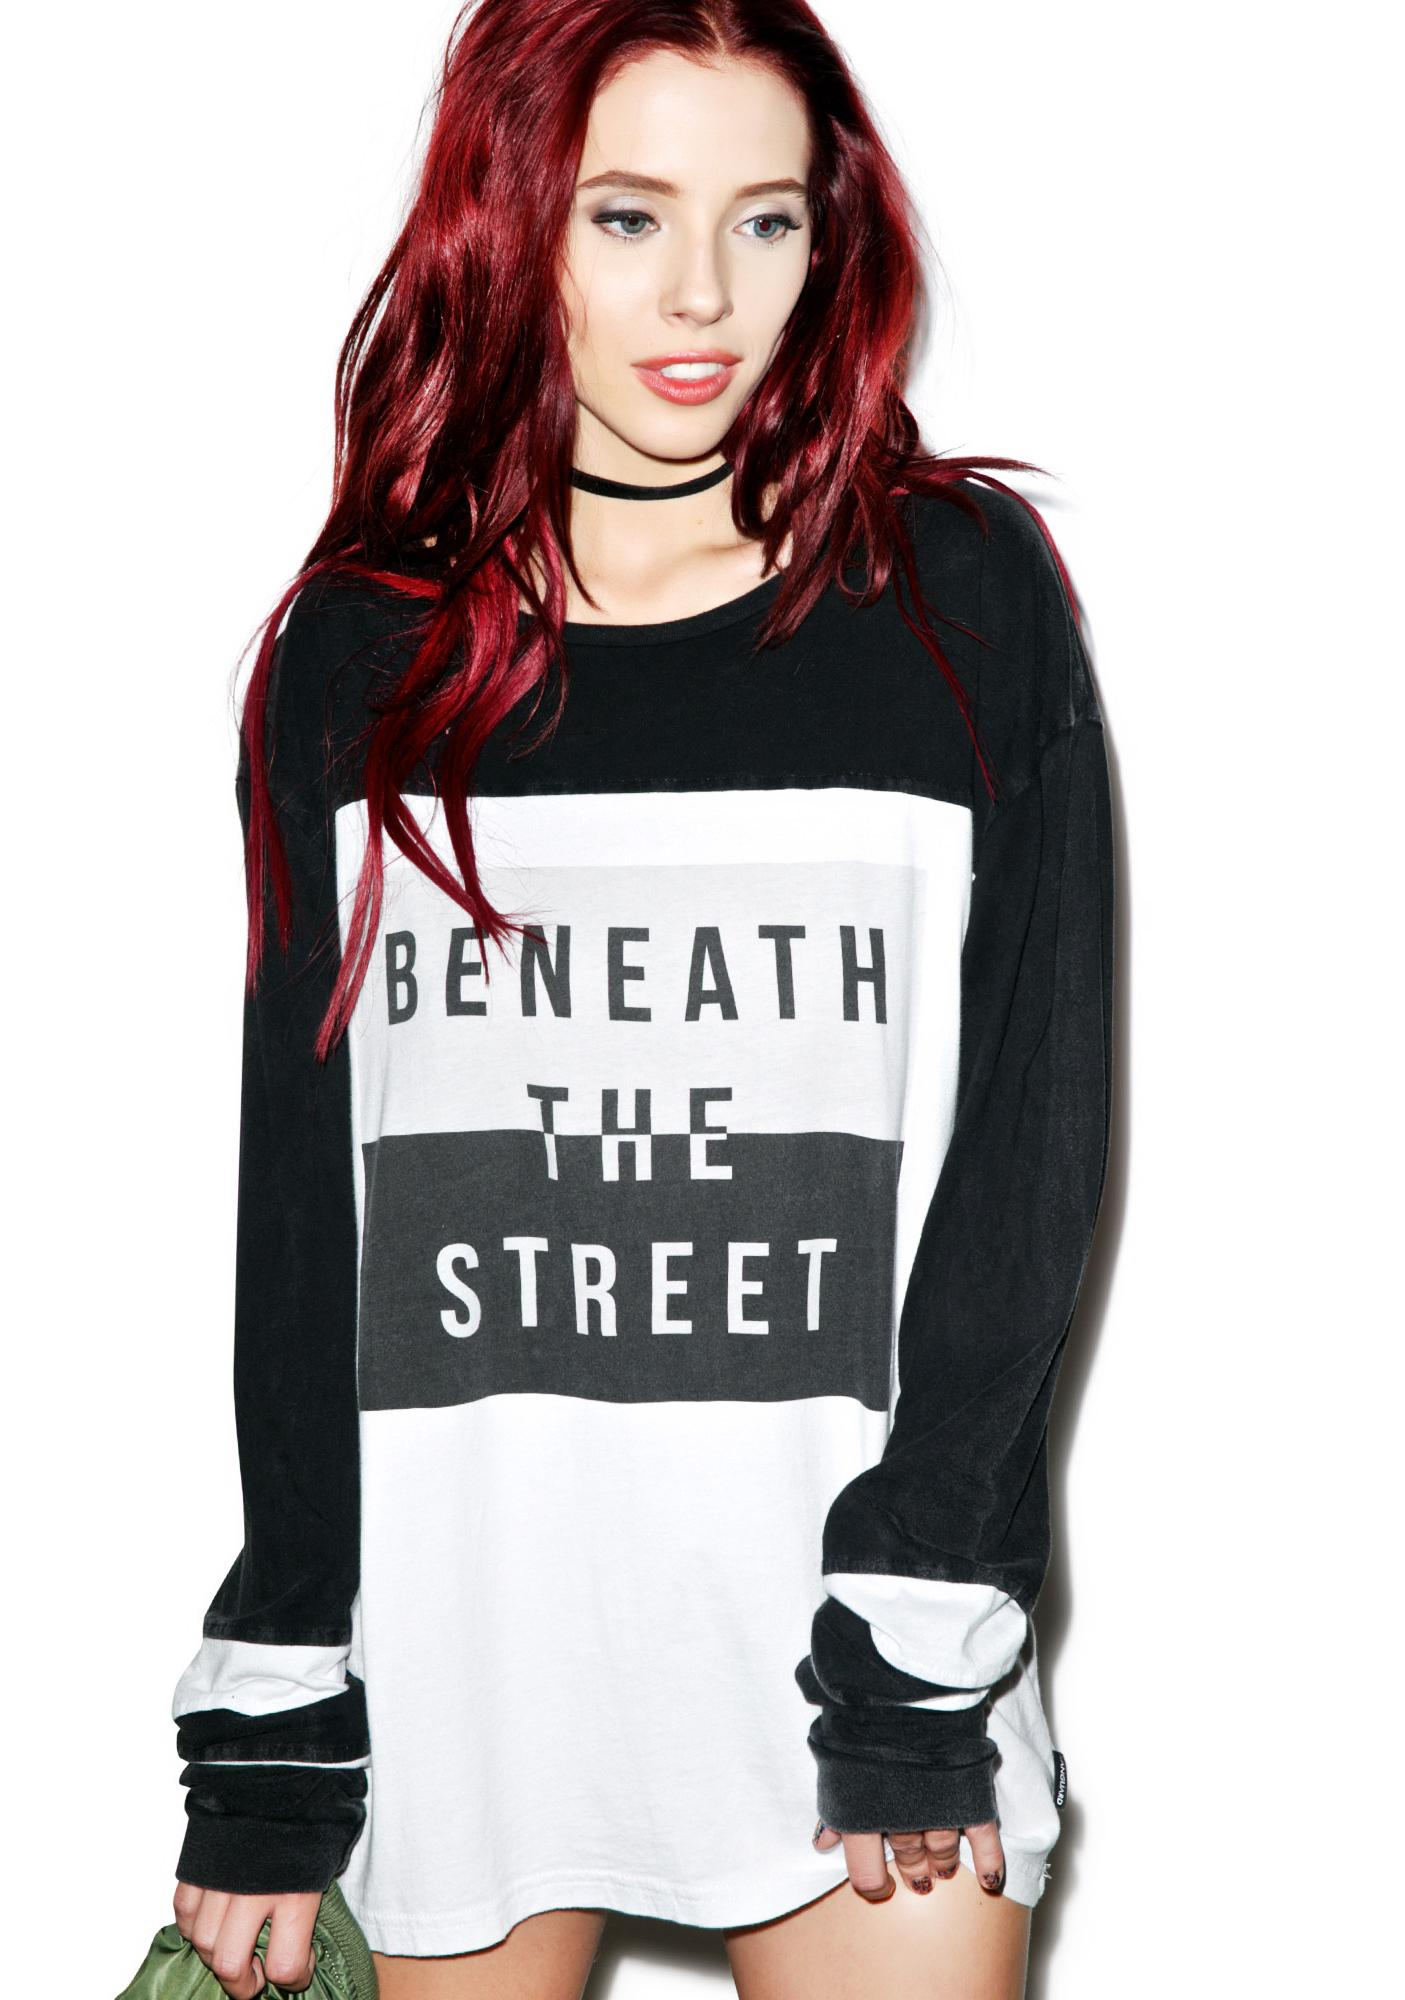 Beneath The Street Panel Tee